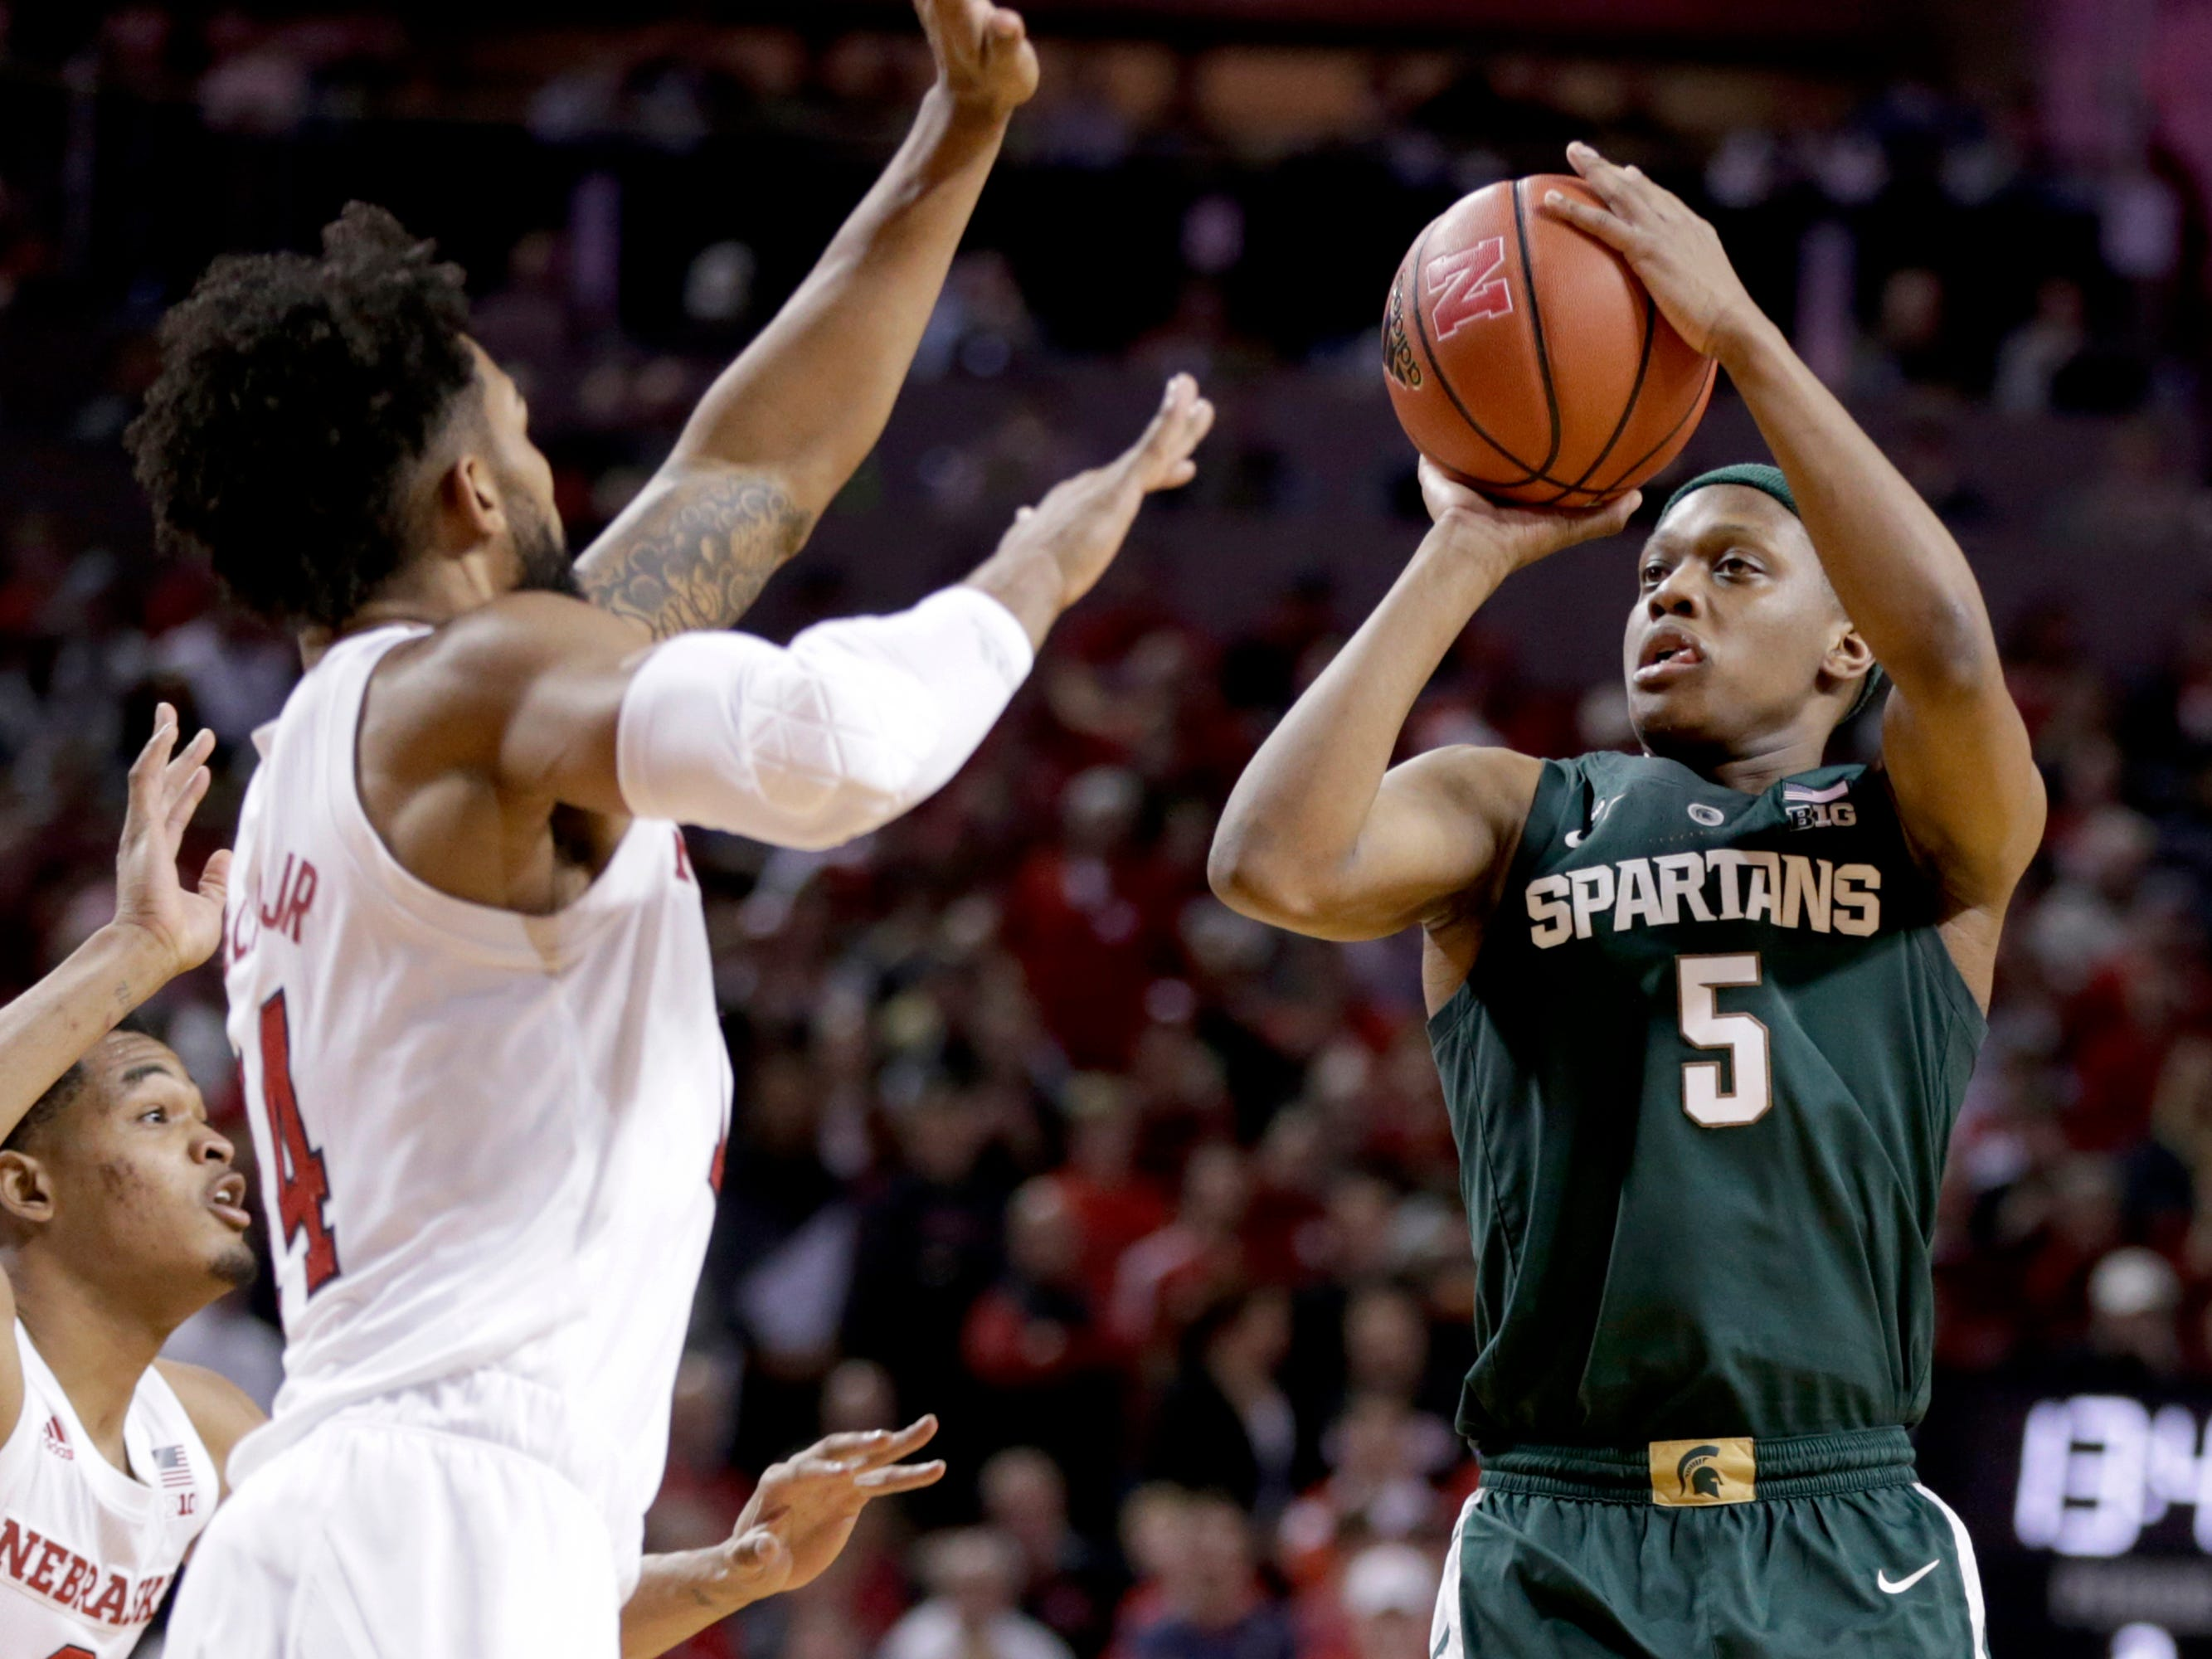 Michigan State's Cassius Winston (5) shoots against Nebraska's James Palmer Jr (0) and Isaac Copeland Jr. (14) during the second half.